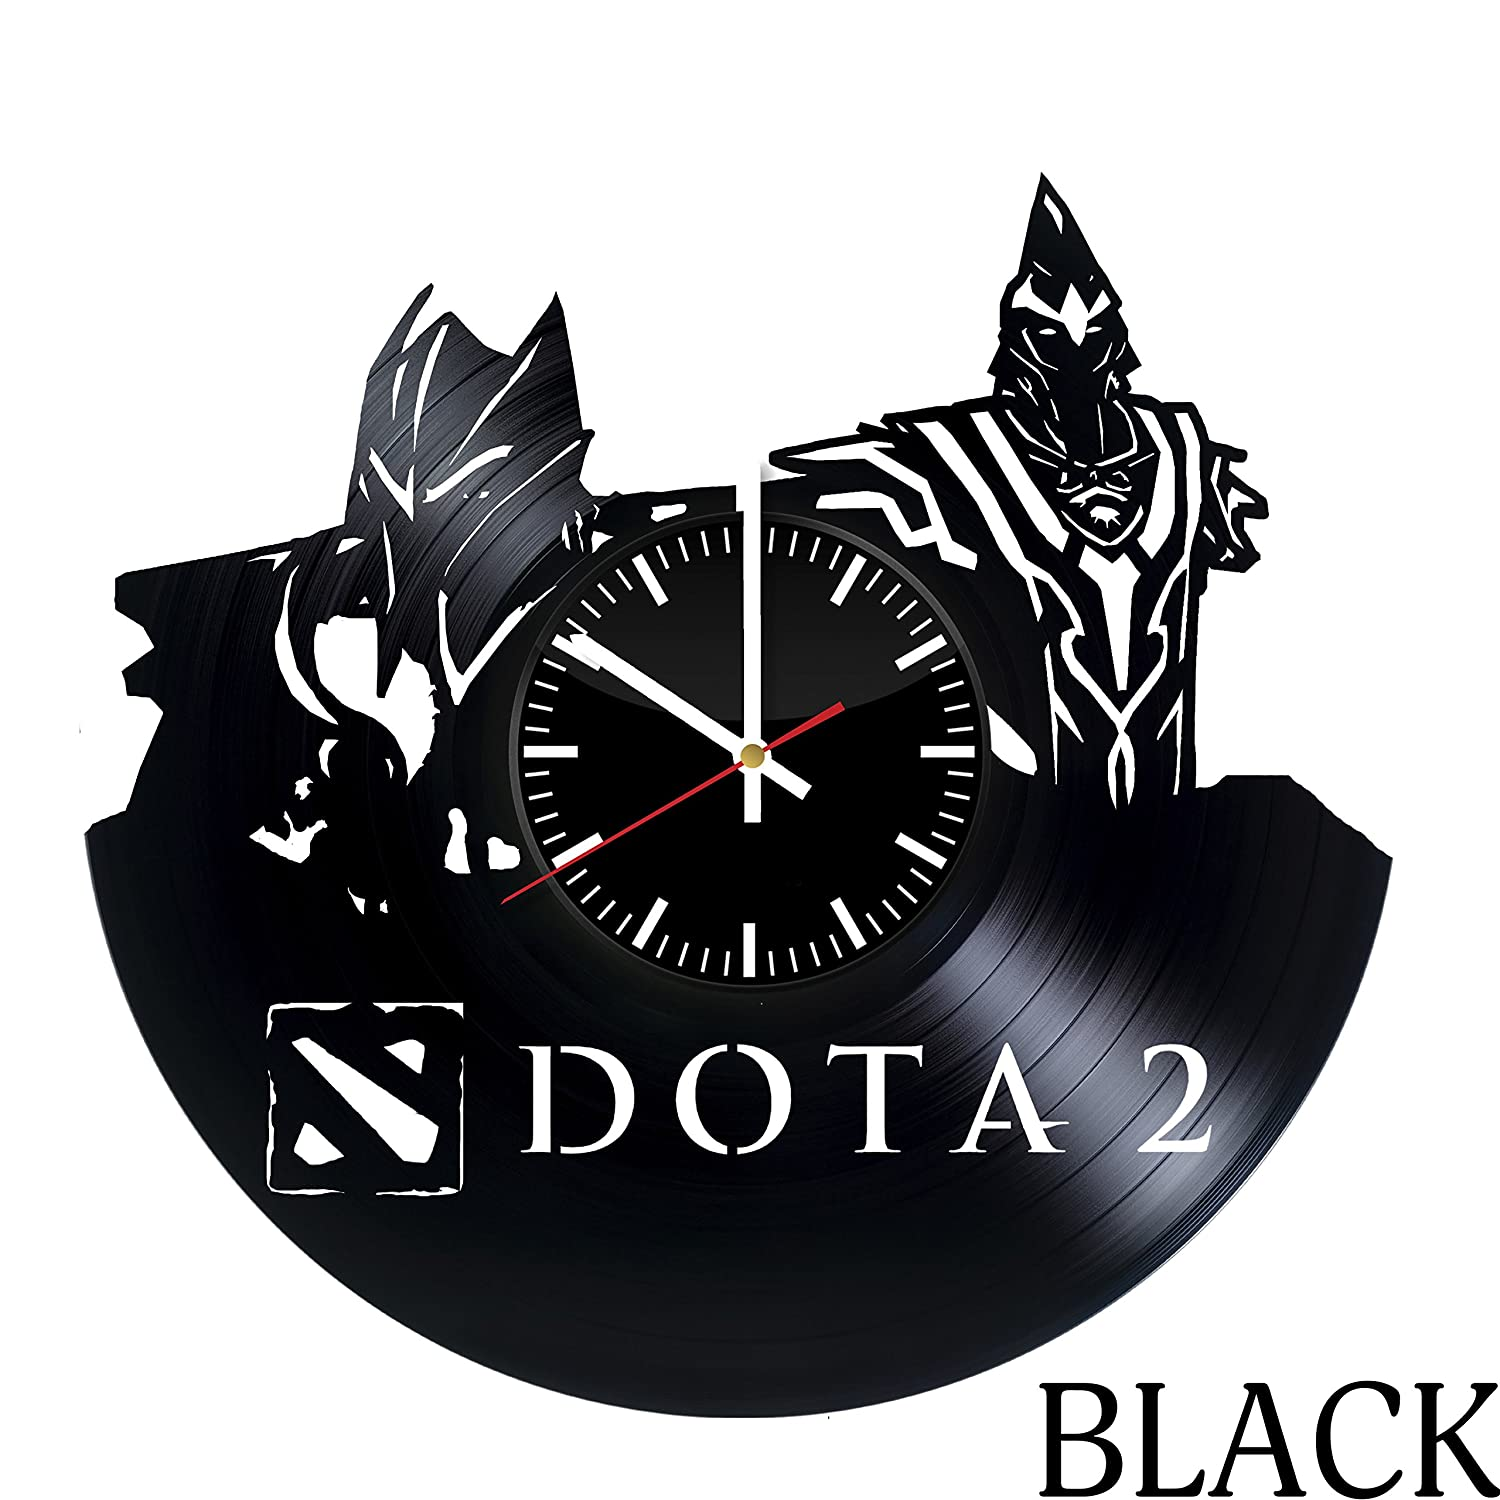 Amazon dota 2 game vinyl record wall clock get unique home amazon dota 2 game vinyl record wall clock get unique home wall decor gift ideas for men boys teens and adult unique video game art design amipublicfo Images